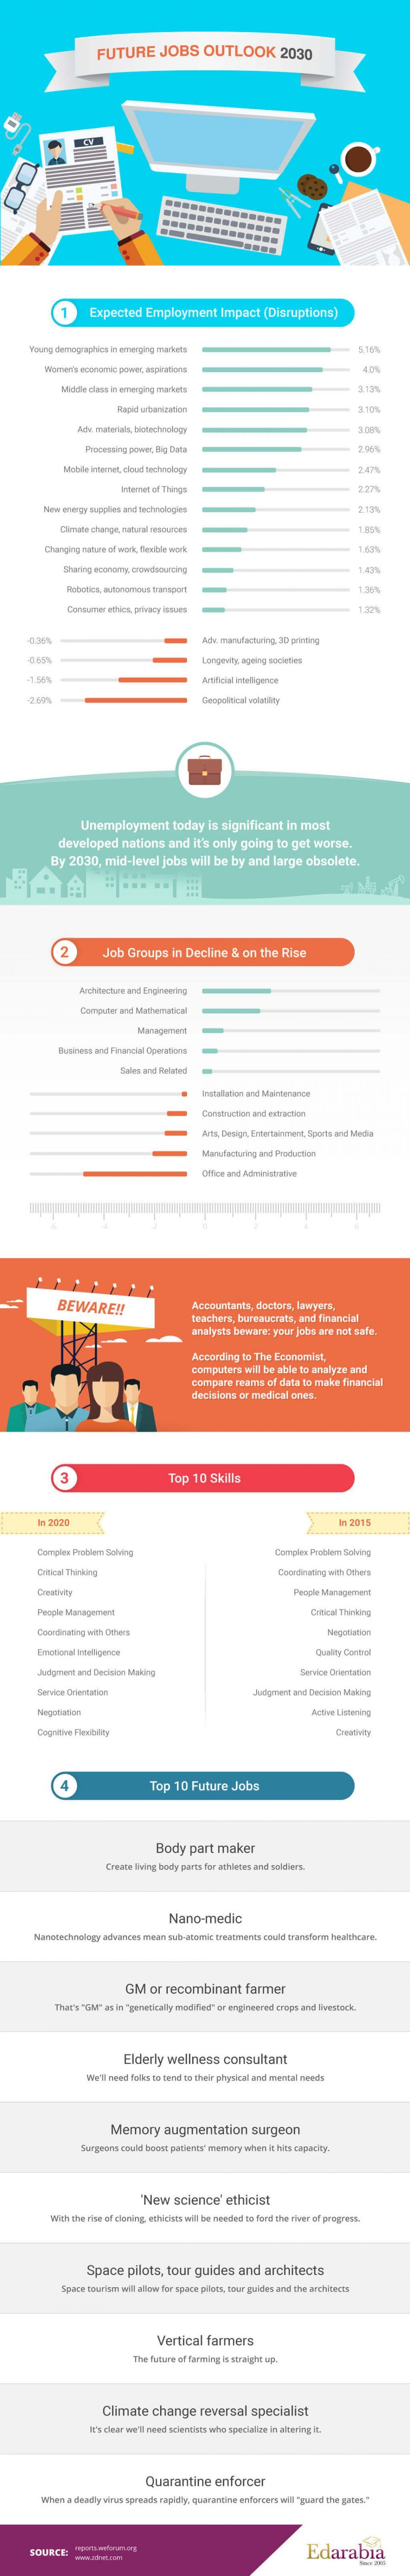 Top 10 Future Jobs by 2030 Infographic